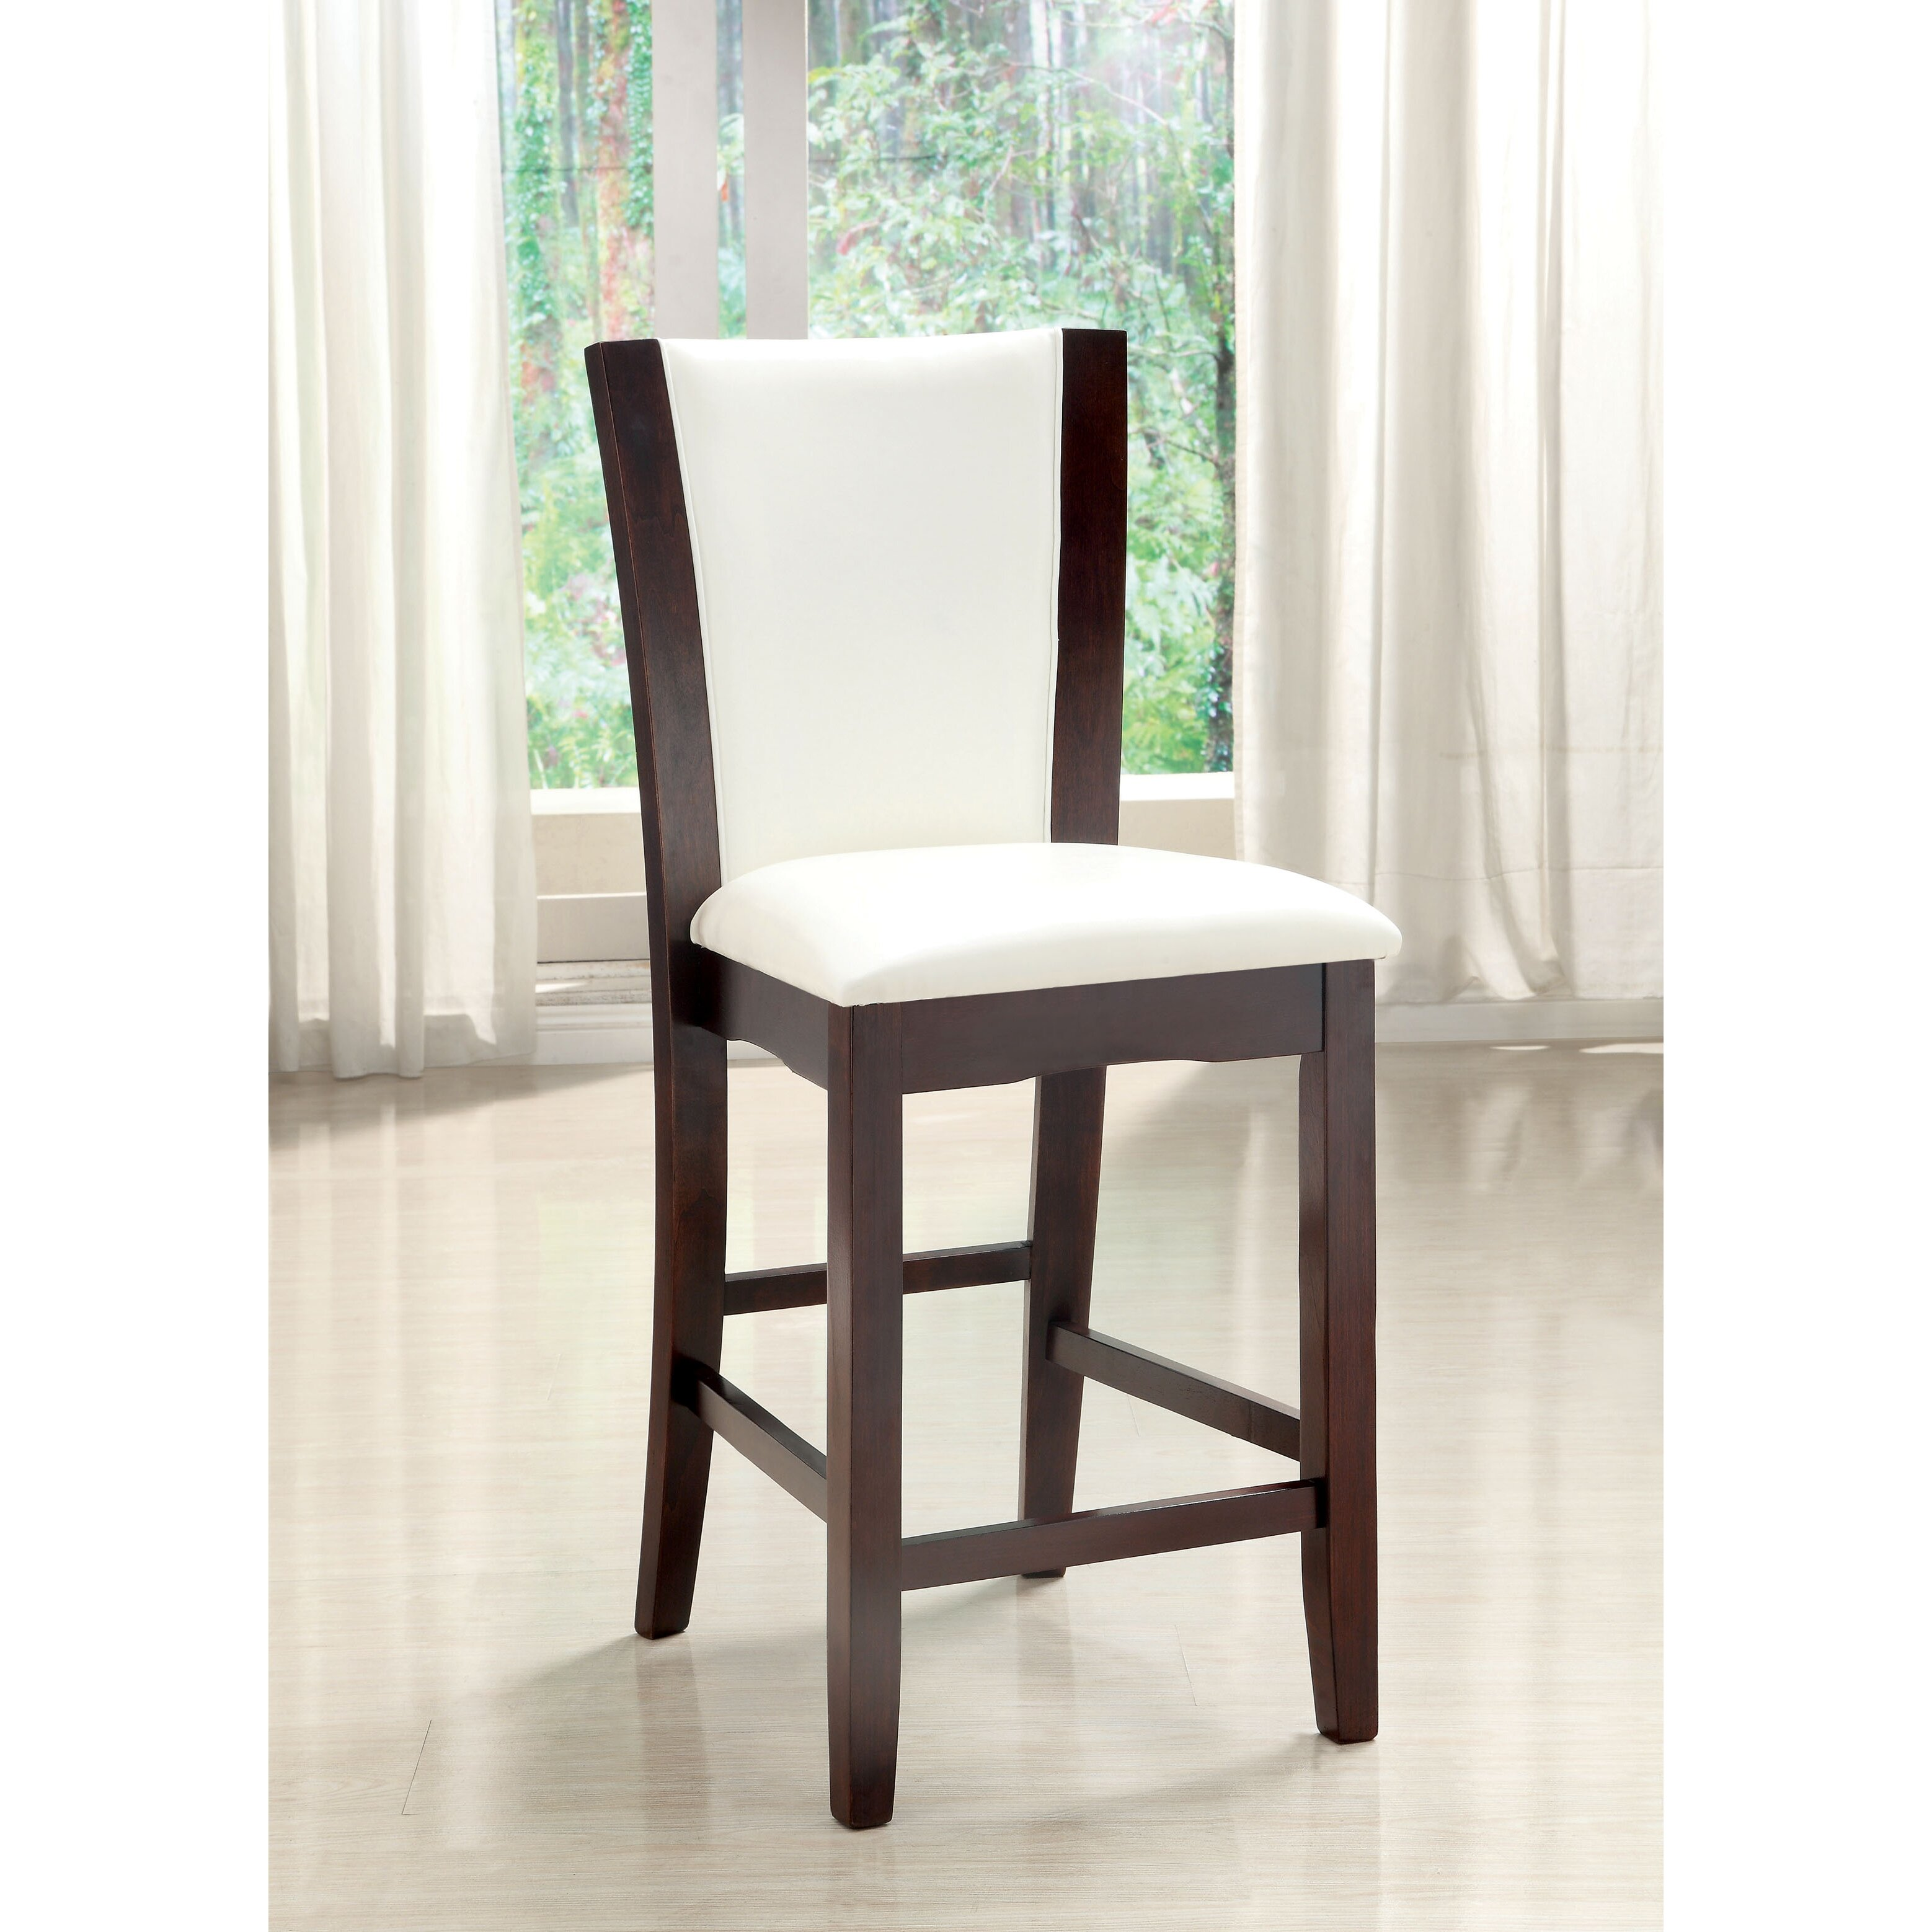 Hokku Designs Carmilla 255quot Dining Chair amp Reviews Wayfair : Hokku Designs Carmilla 255 Dining Chair XHX1255 from www.wayfair.com size 3116 x 3116 jpeg 905kB